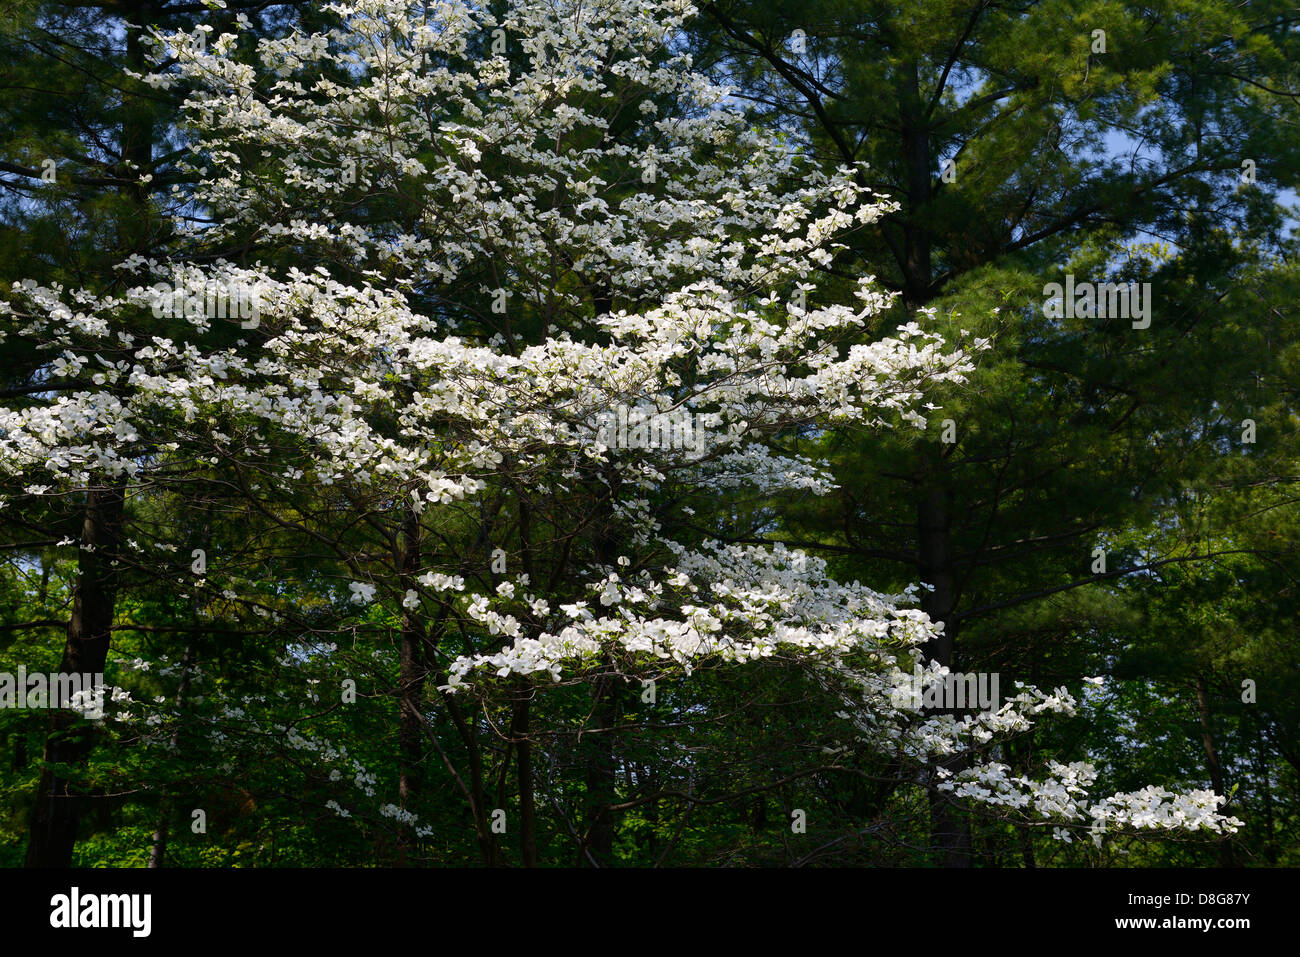 Flowering Dogwood tree in a forest with pines in Humber College Arboretum Toronto - Stock Image